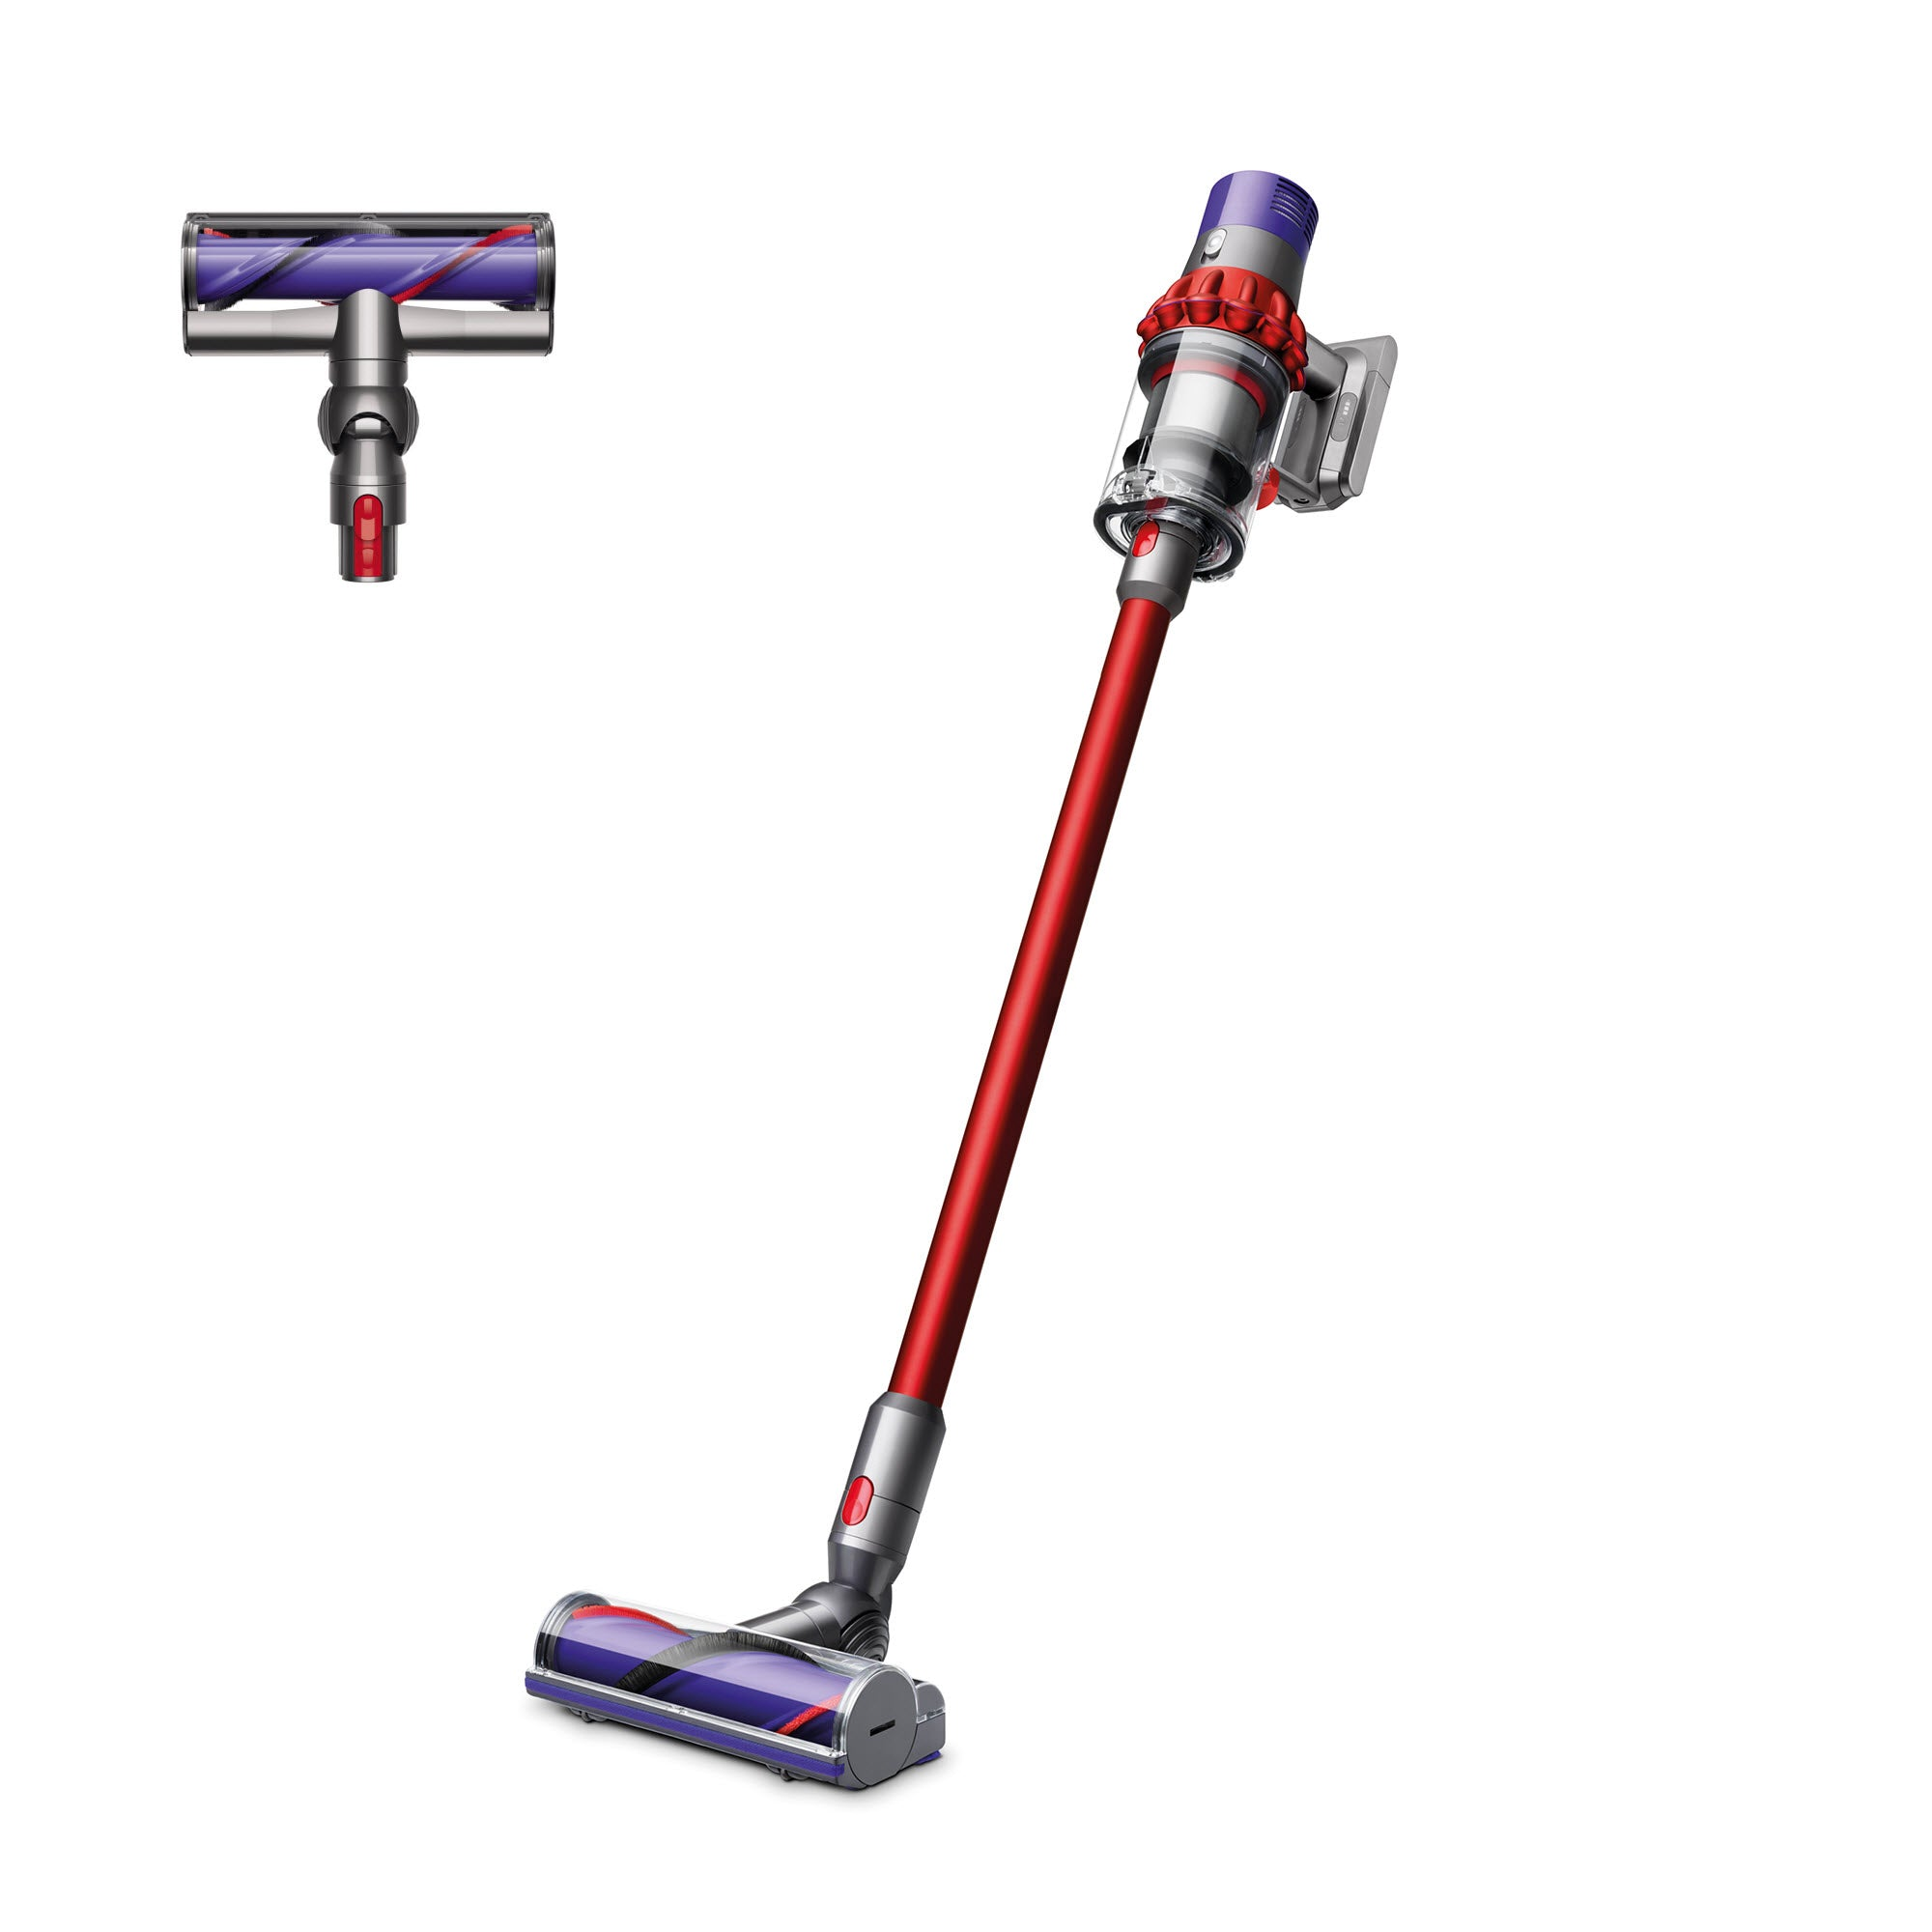 Dyson V10 Motorhead Cordless Vacuum Cleaner | Red | Refurbished - FLJ CORPORATIONS